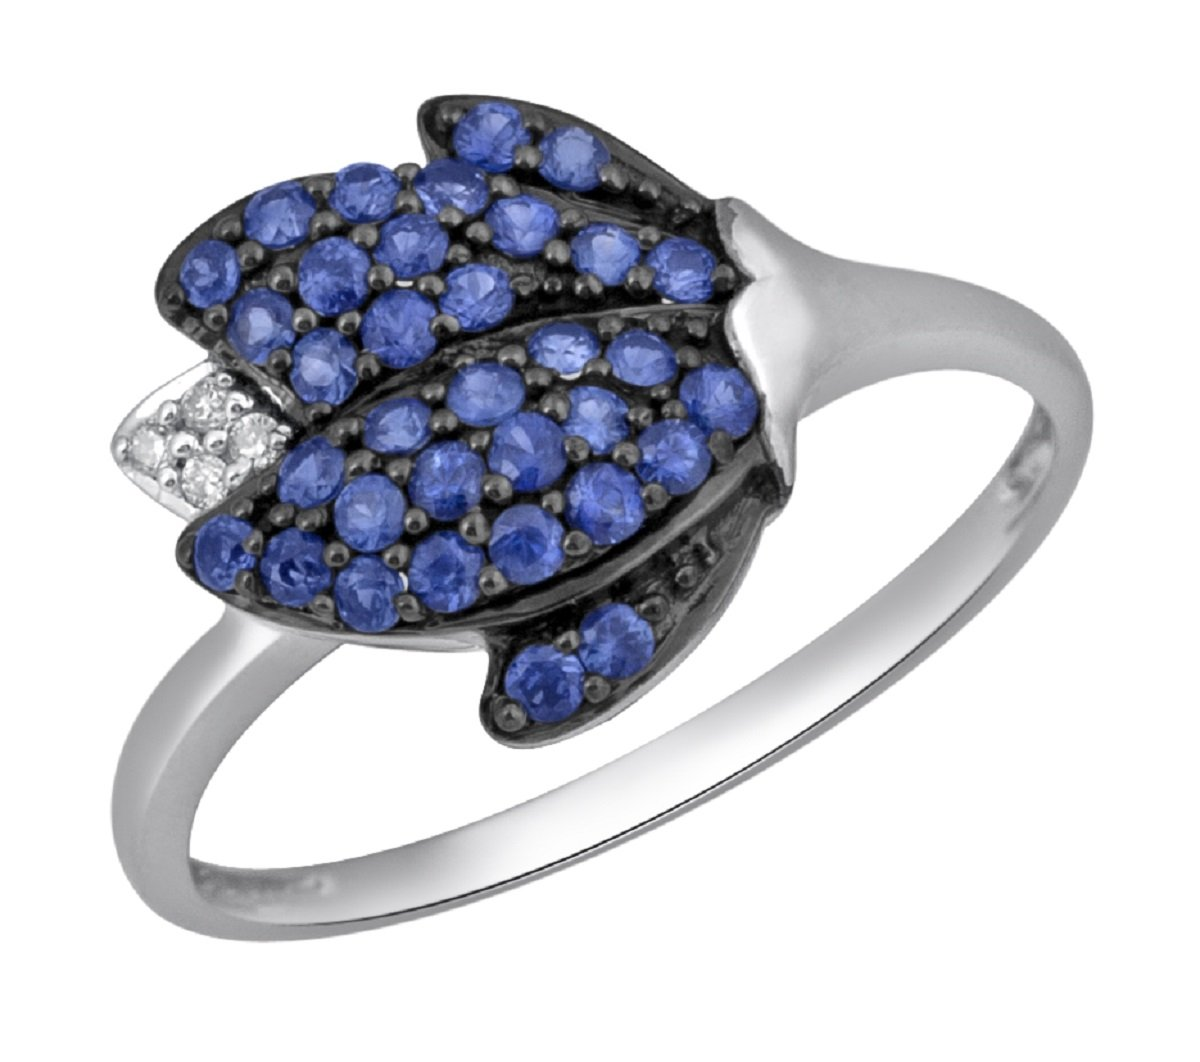 Christmas Sale !! , Christmas Gift, Unique, Rare, One of a Kind, Jewel Ivy 14K White Gold Ring with Blue Sapphire and Diamond, US-7.25 Size